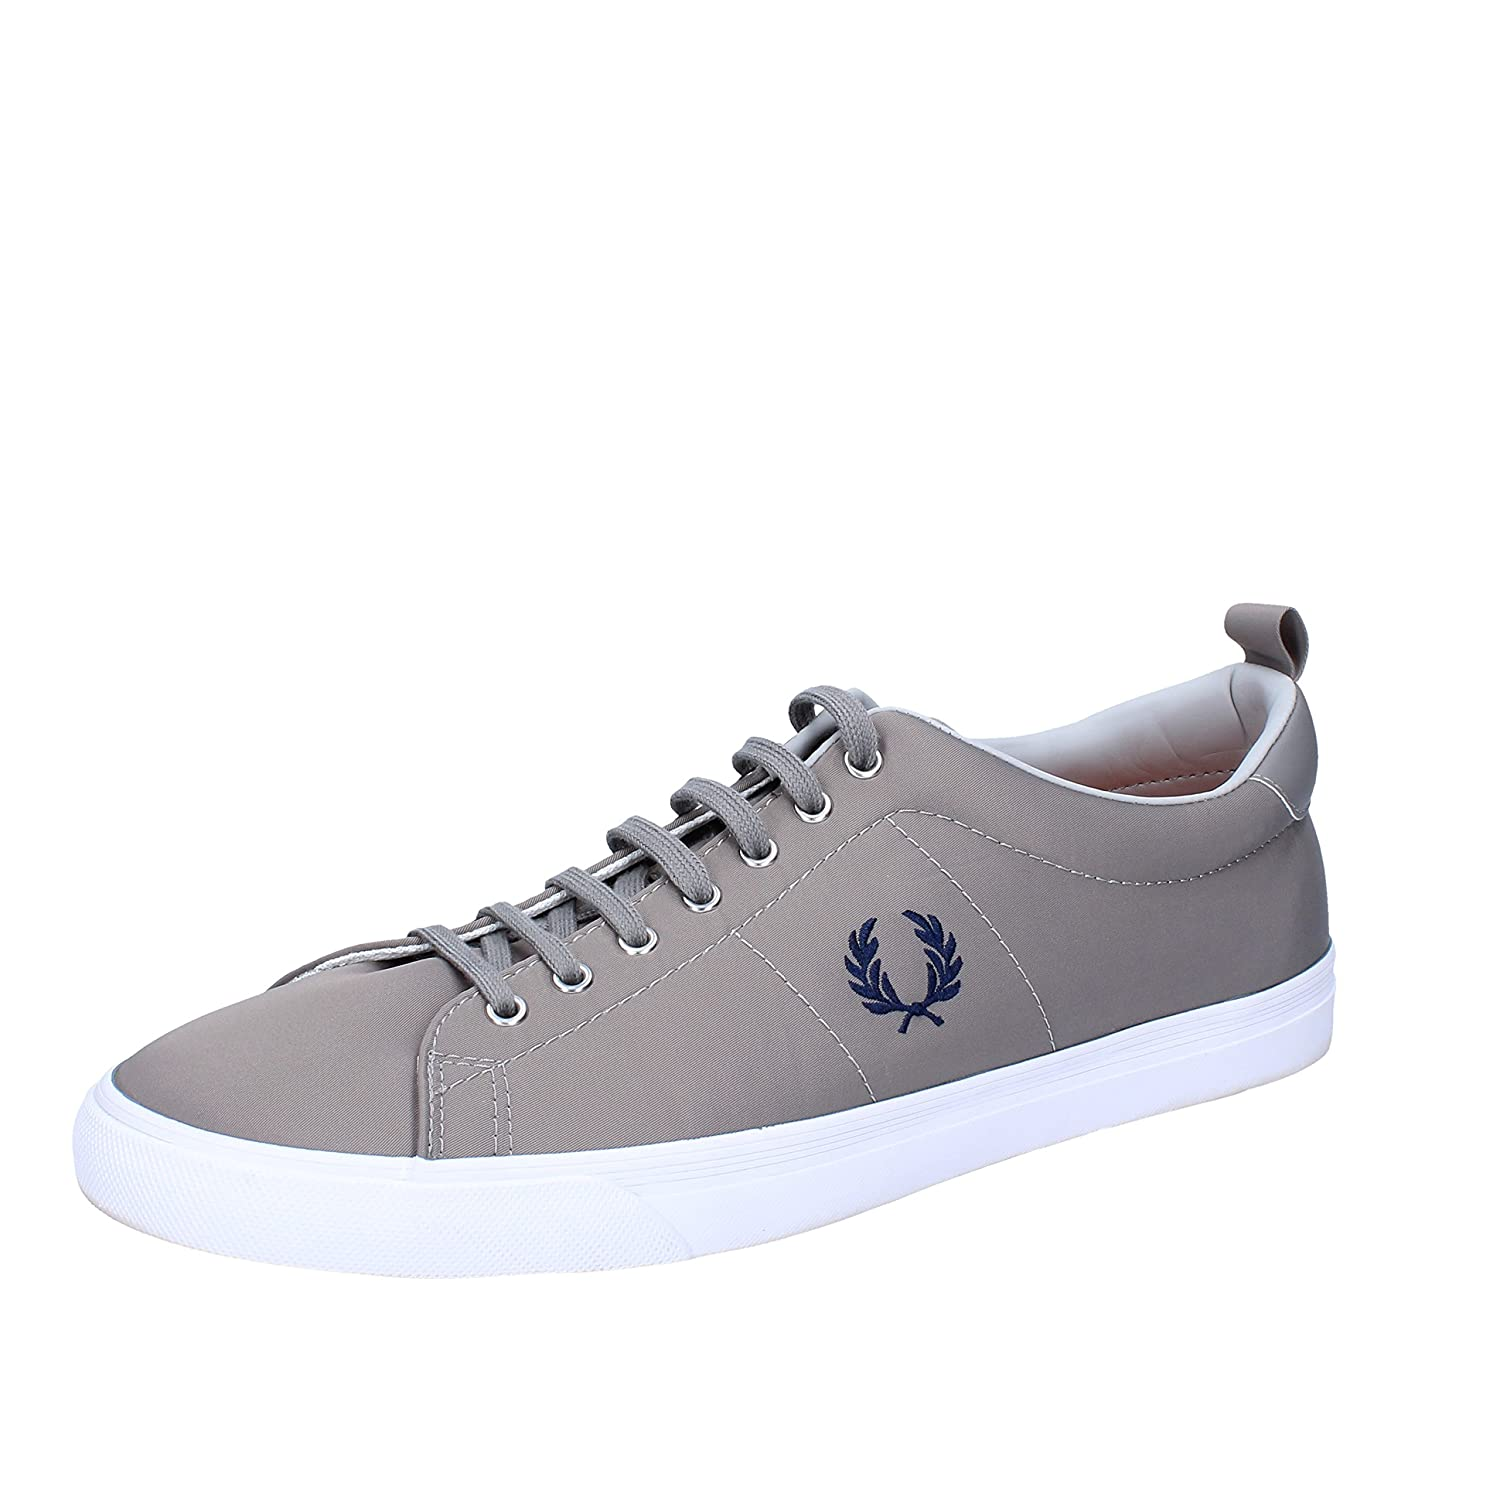 Frot Perry Underspin Nylon Falcon grau